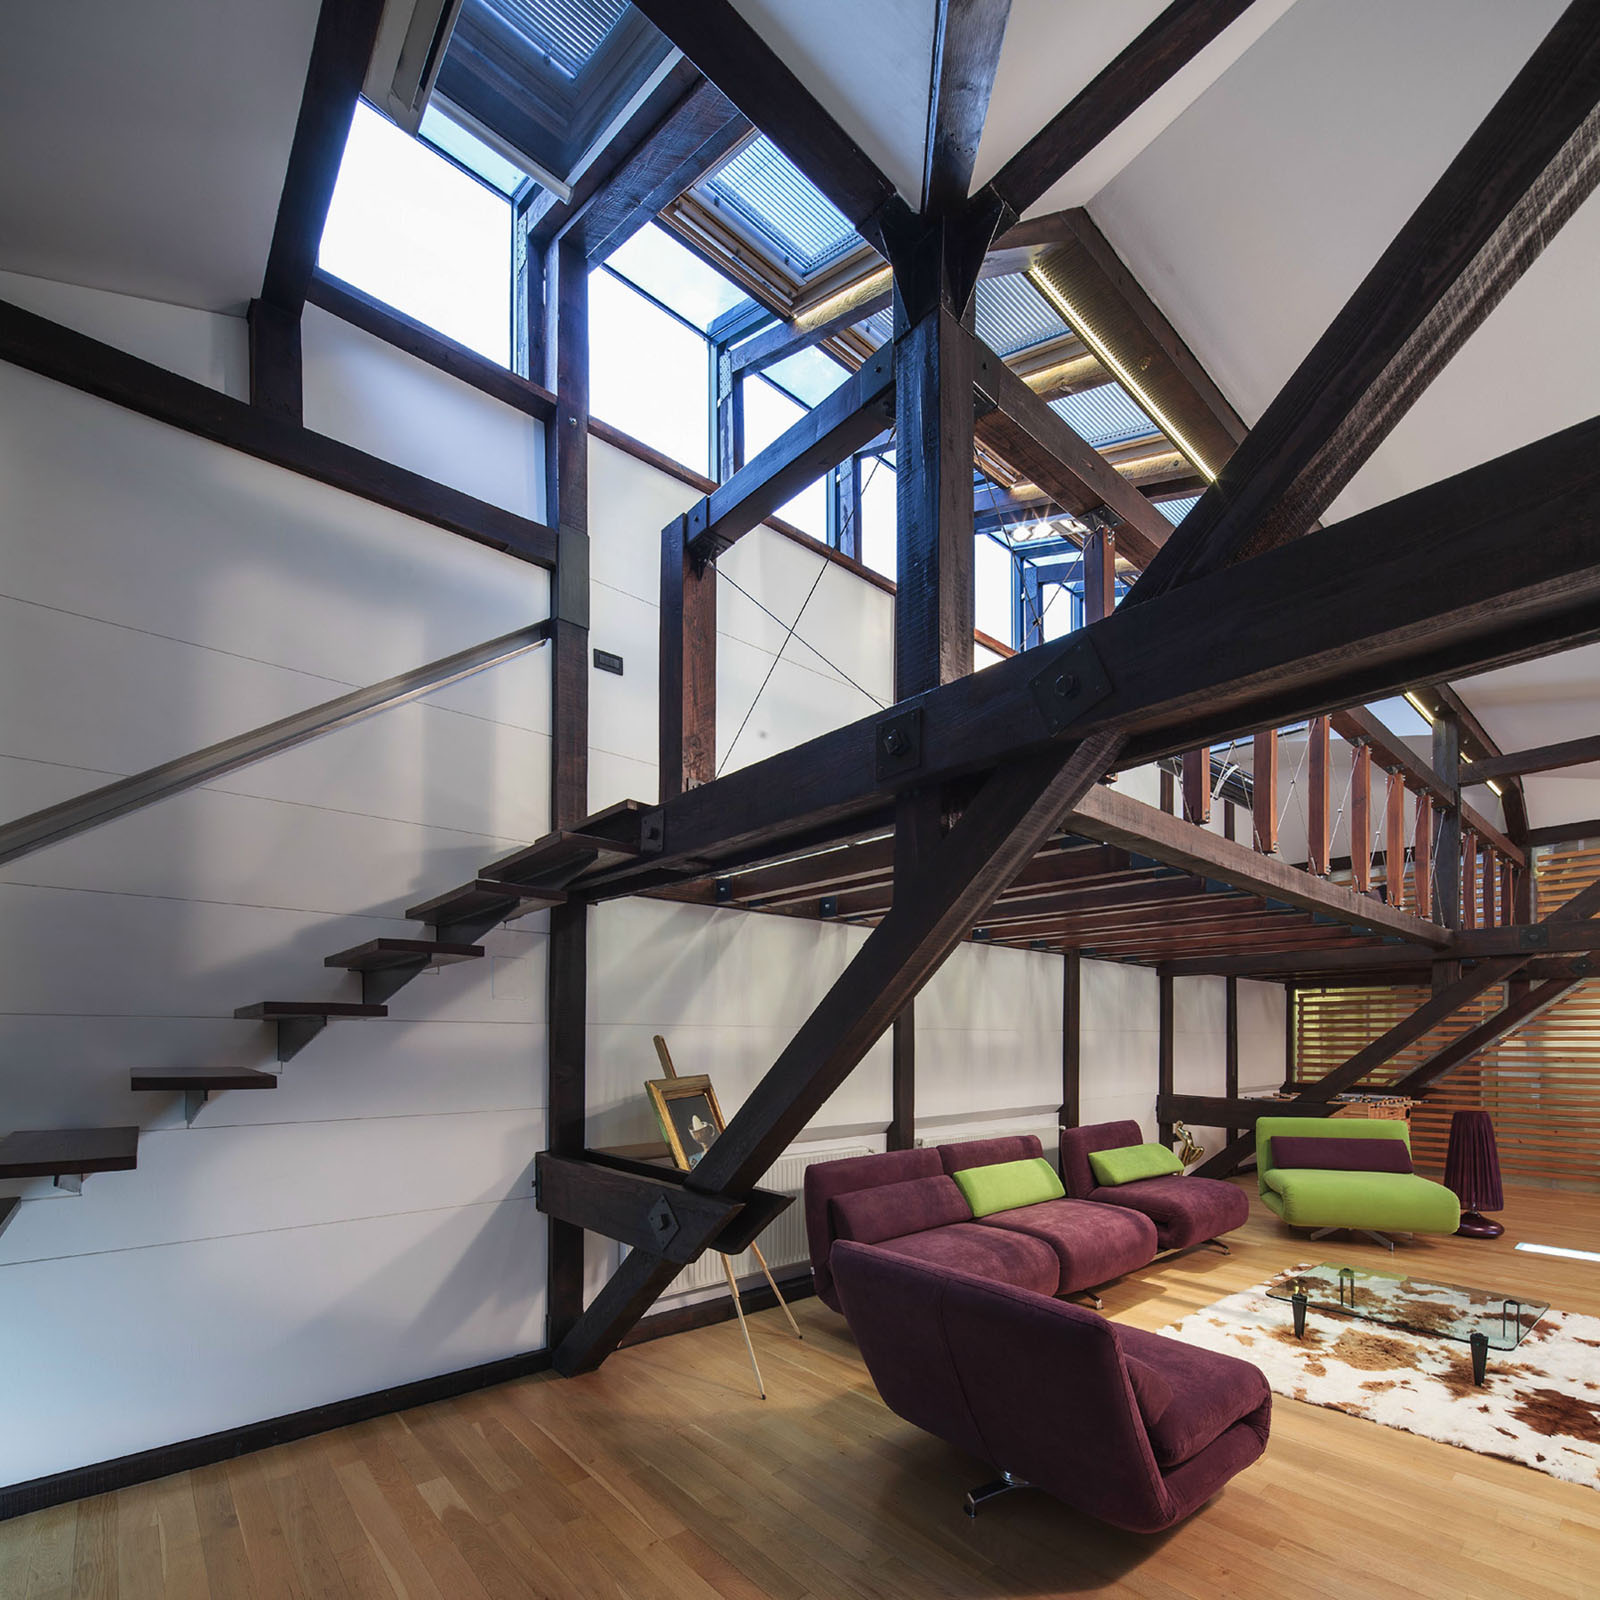 Wood structure defines contemporary renovated attic loft apartment in bucharest idesignarch for Loft apartment interior design